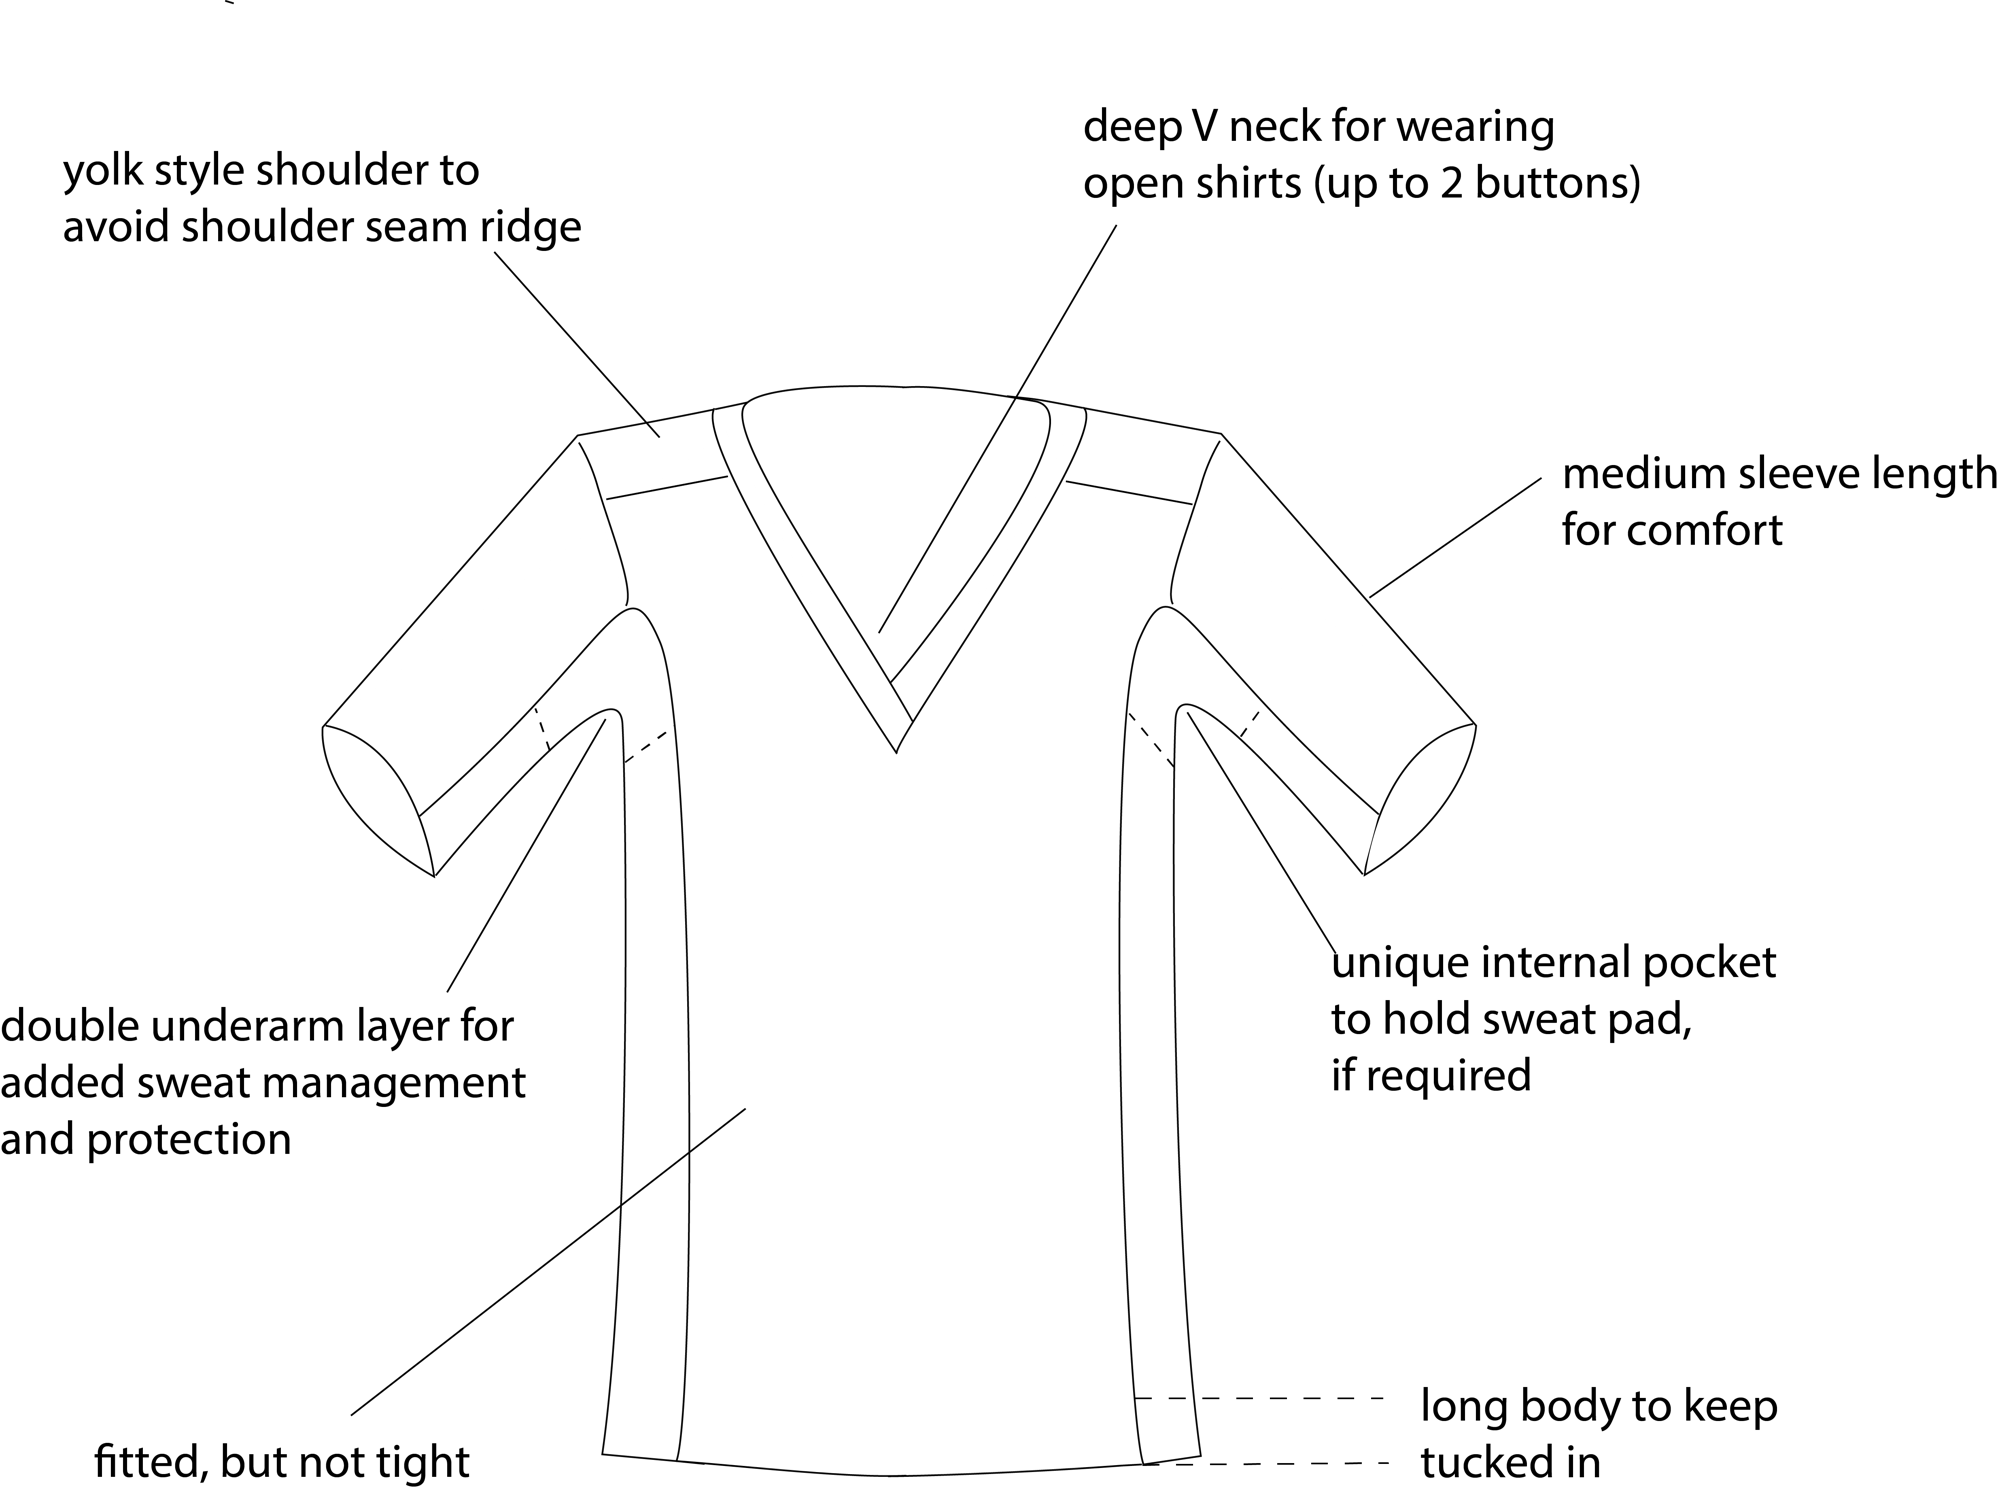 Drawing showing the design and features of the Oxford undershirt